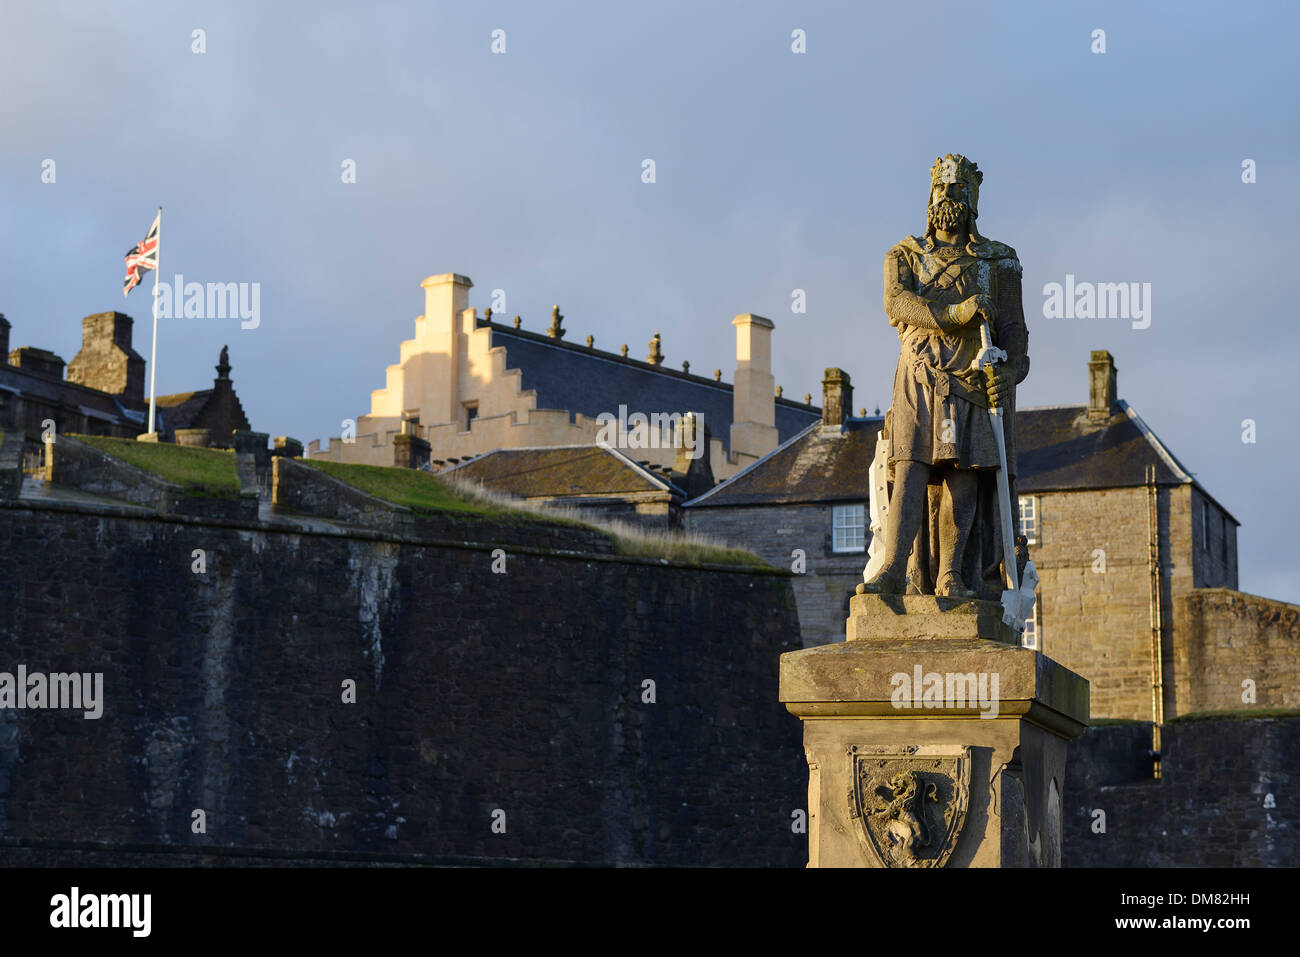 Statue of Robert the Bruce outside Stirling Castle in Scotland - Stock Image